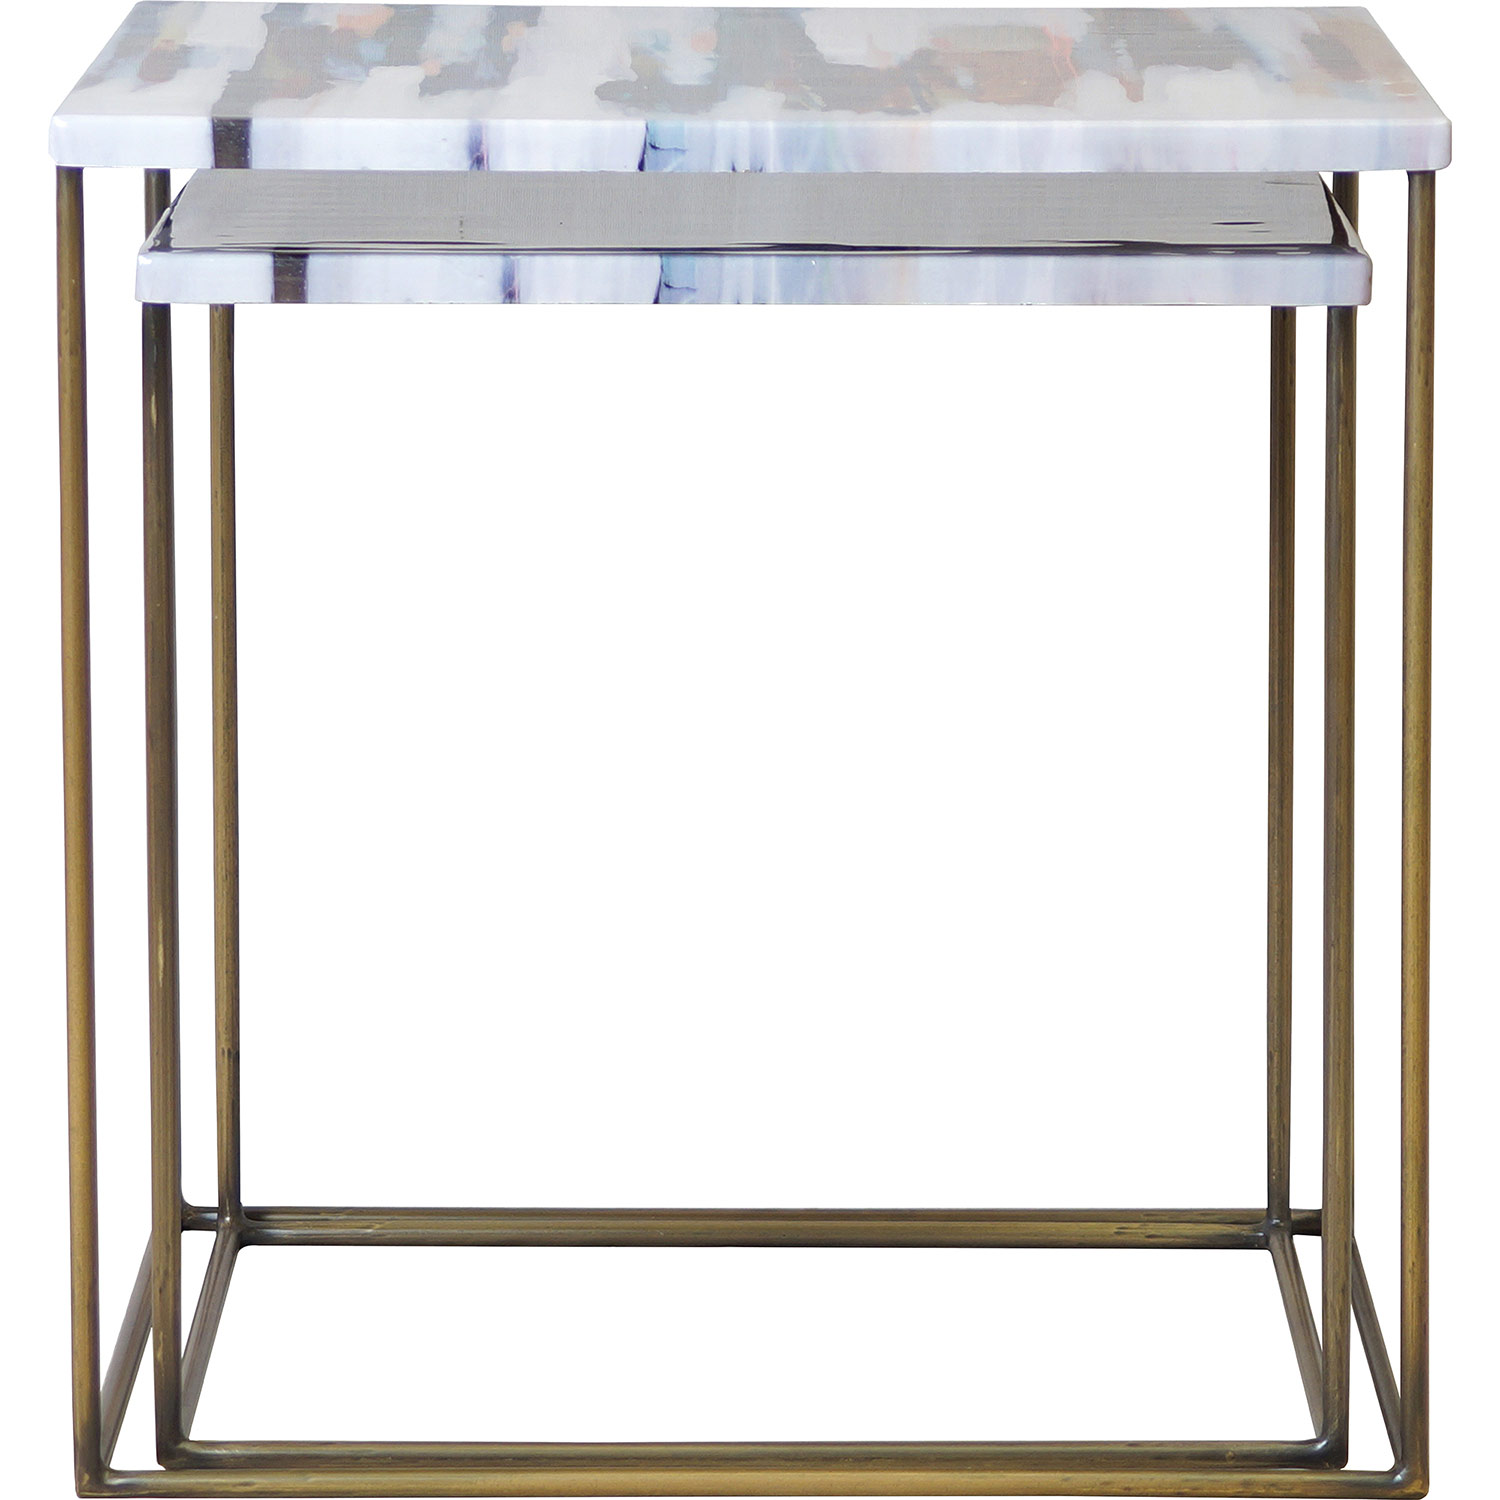 Ren-Wil Philo Accent Table - Brass Antique/Decal Top